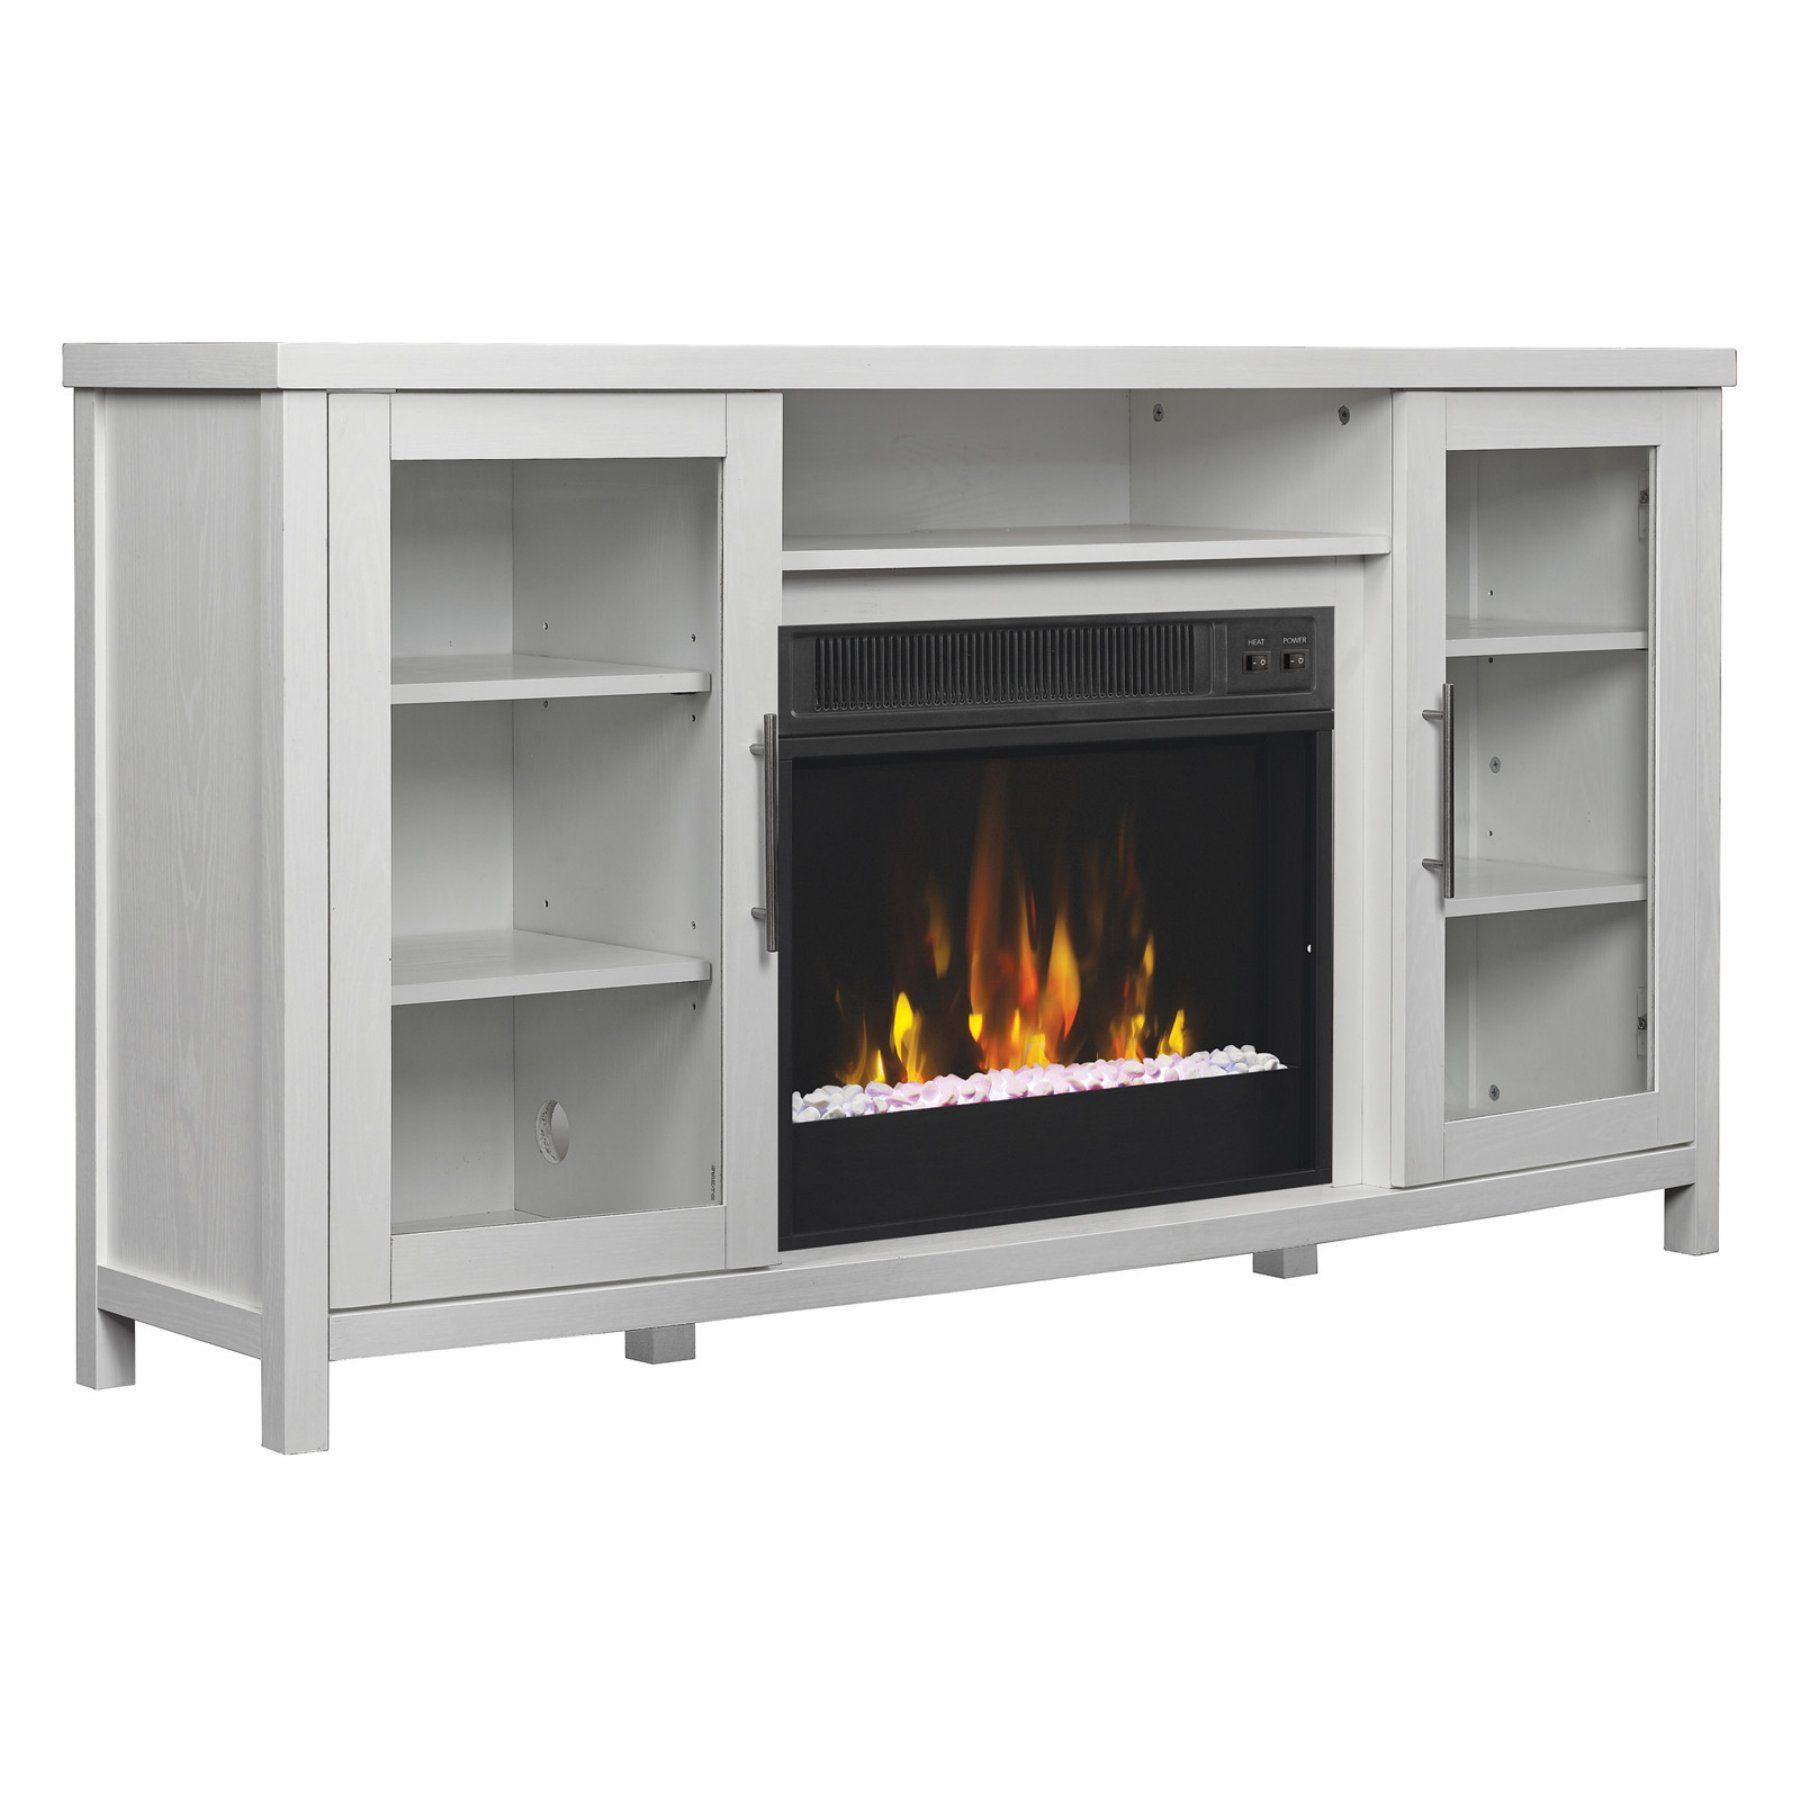 ca accessories media infrared white consoles efca electric in console fireplace weathered wyatt tv products finish